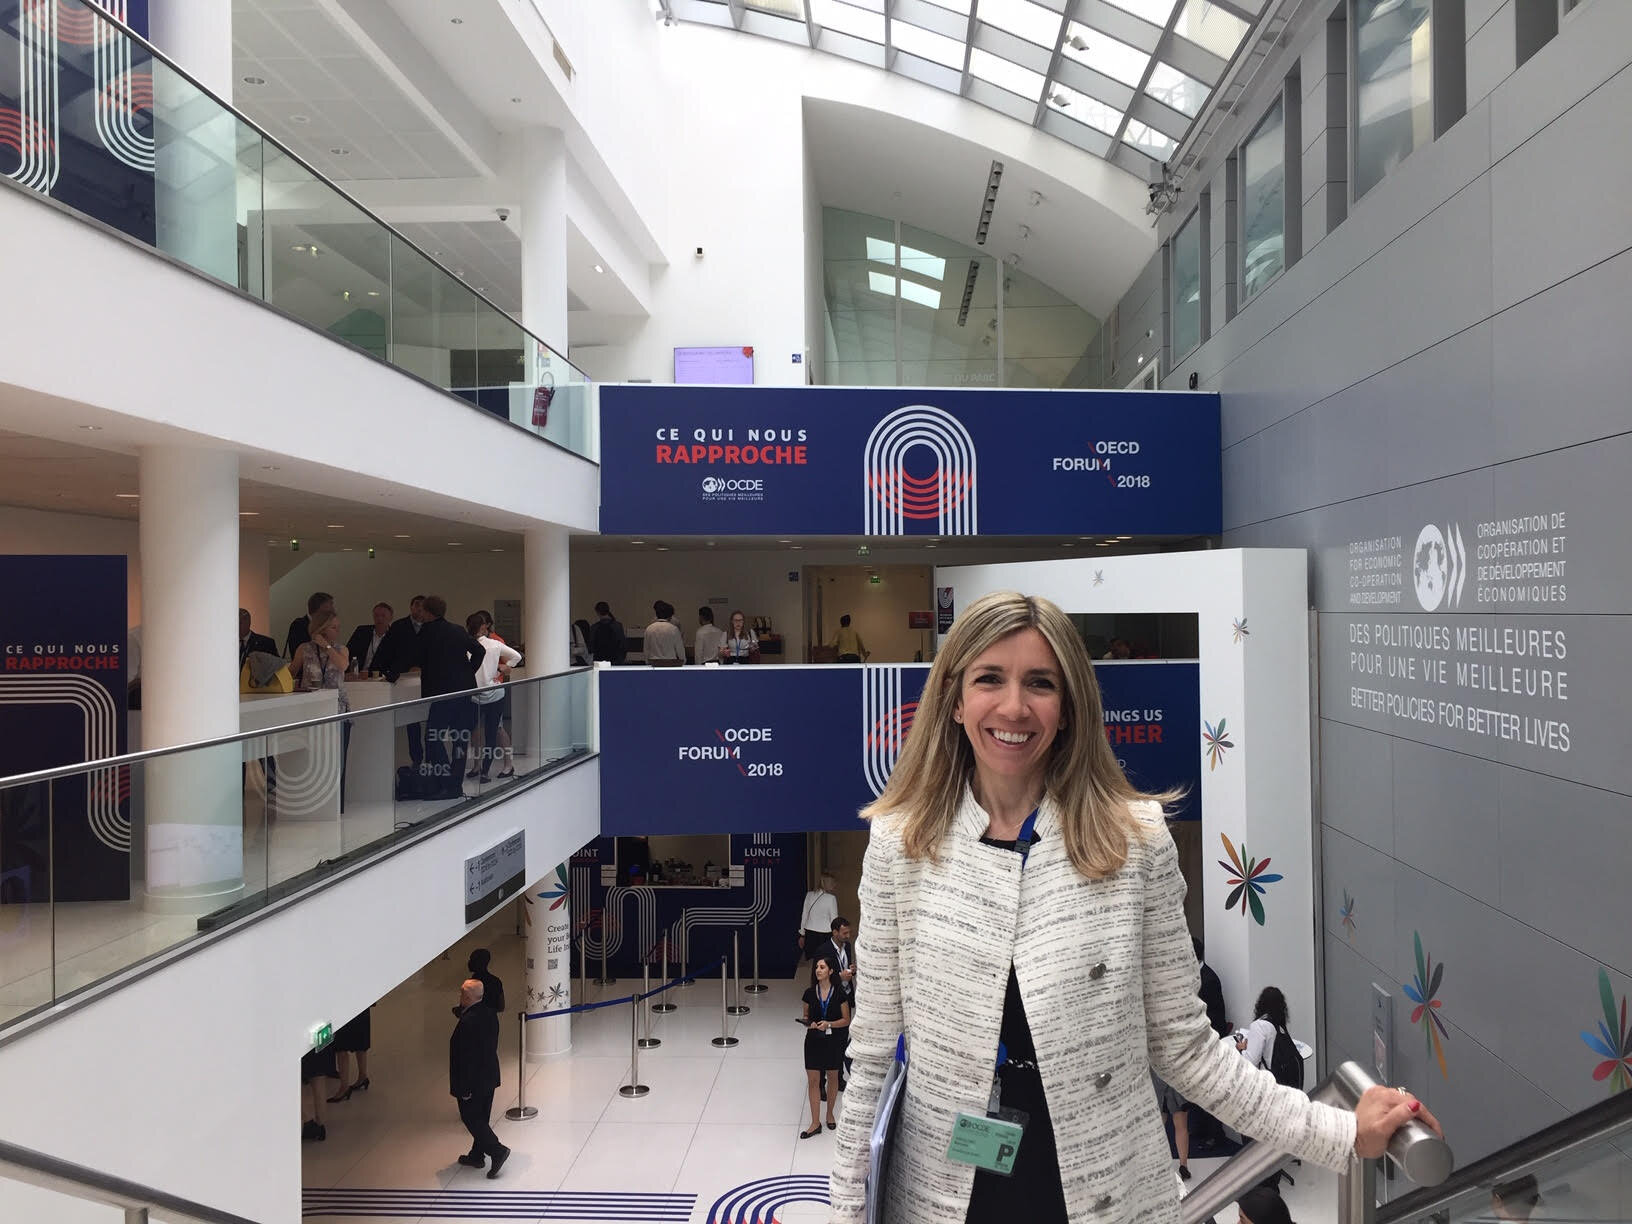 OECD SUMMIT 2018, PARIS - OECD Summit, Paris, May 2018. Strong interest and focus across governments and business world to drive the #futureofwork, and tackle challenges such as the polarization of the job market (high vs low skilled) head-on, leveraging the power of #education to #reskill, #upskill, help the workforce to adapt, increasing #EQ and hashtag#AQ in the process. The most attended sessions of the Summit? Those about D&I, gender equality, future of work.